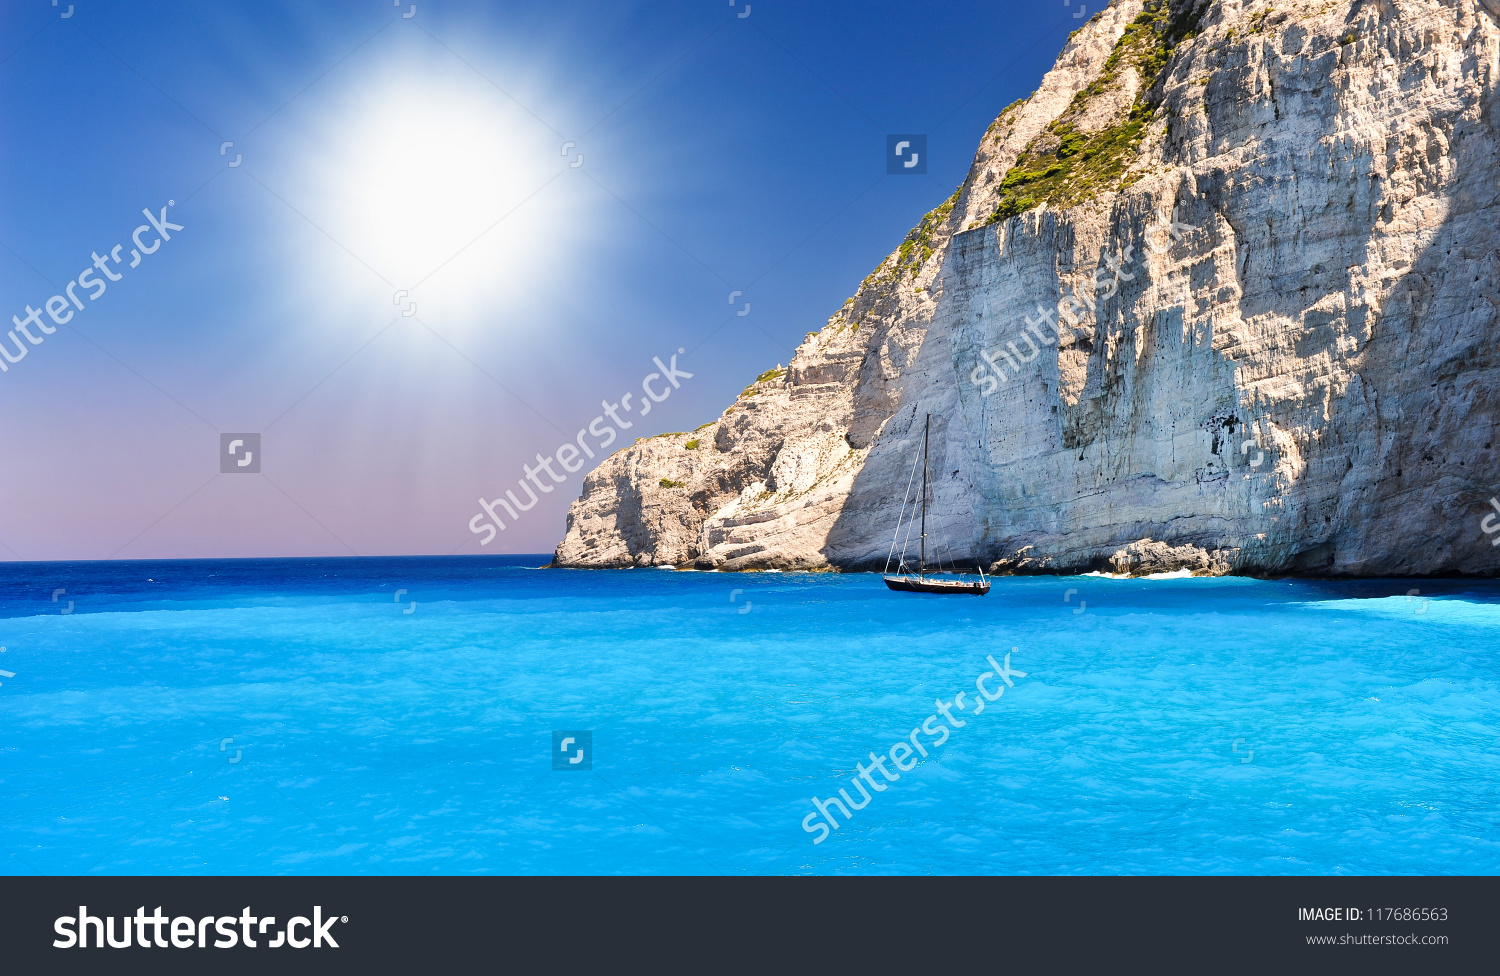 Navagio Beach clipart #5, Download drawings